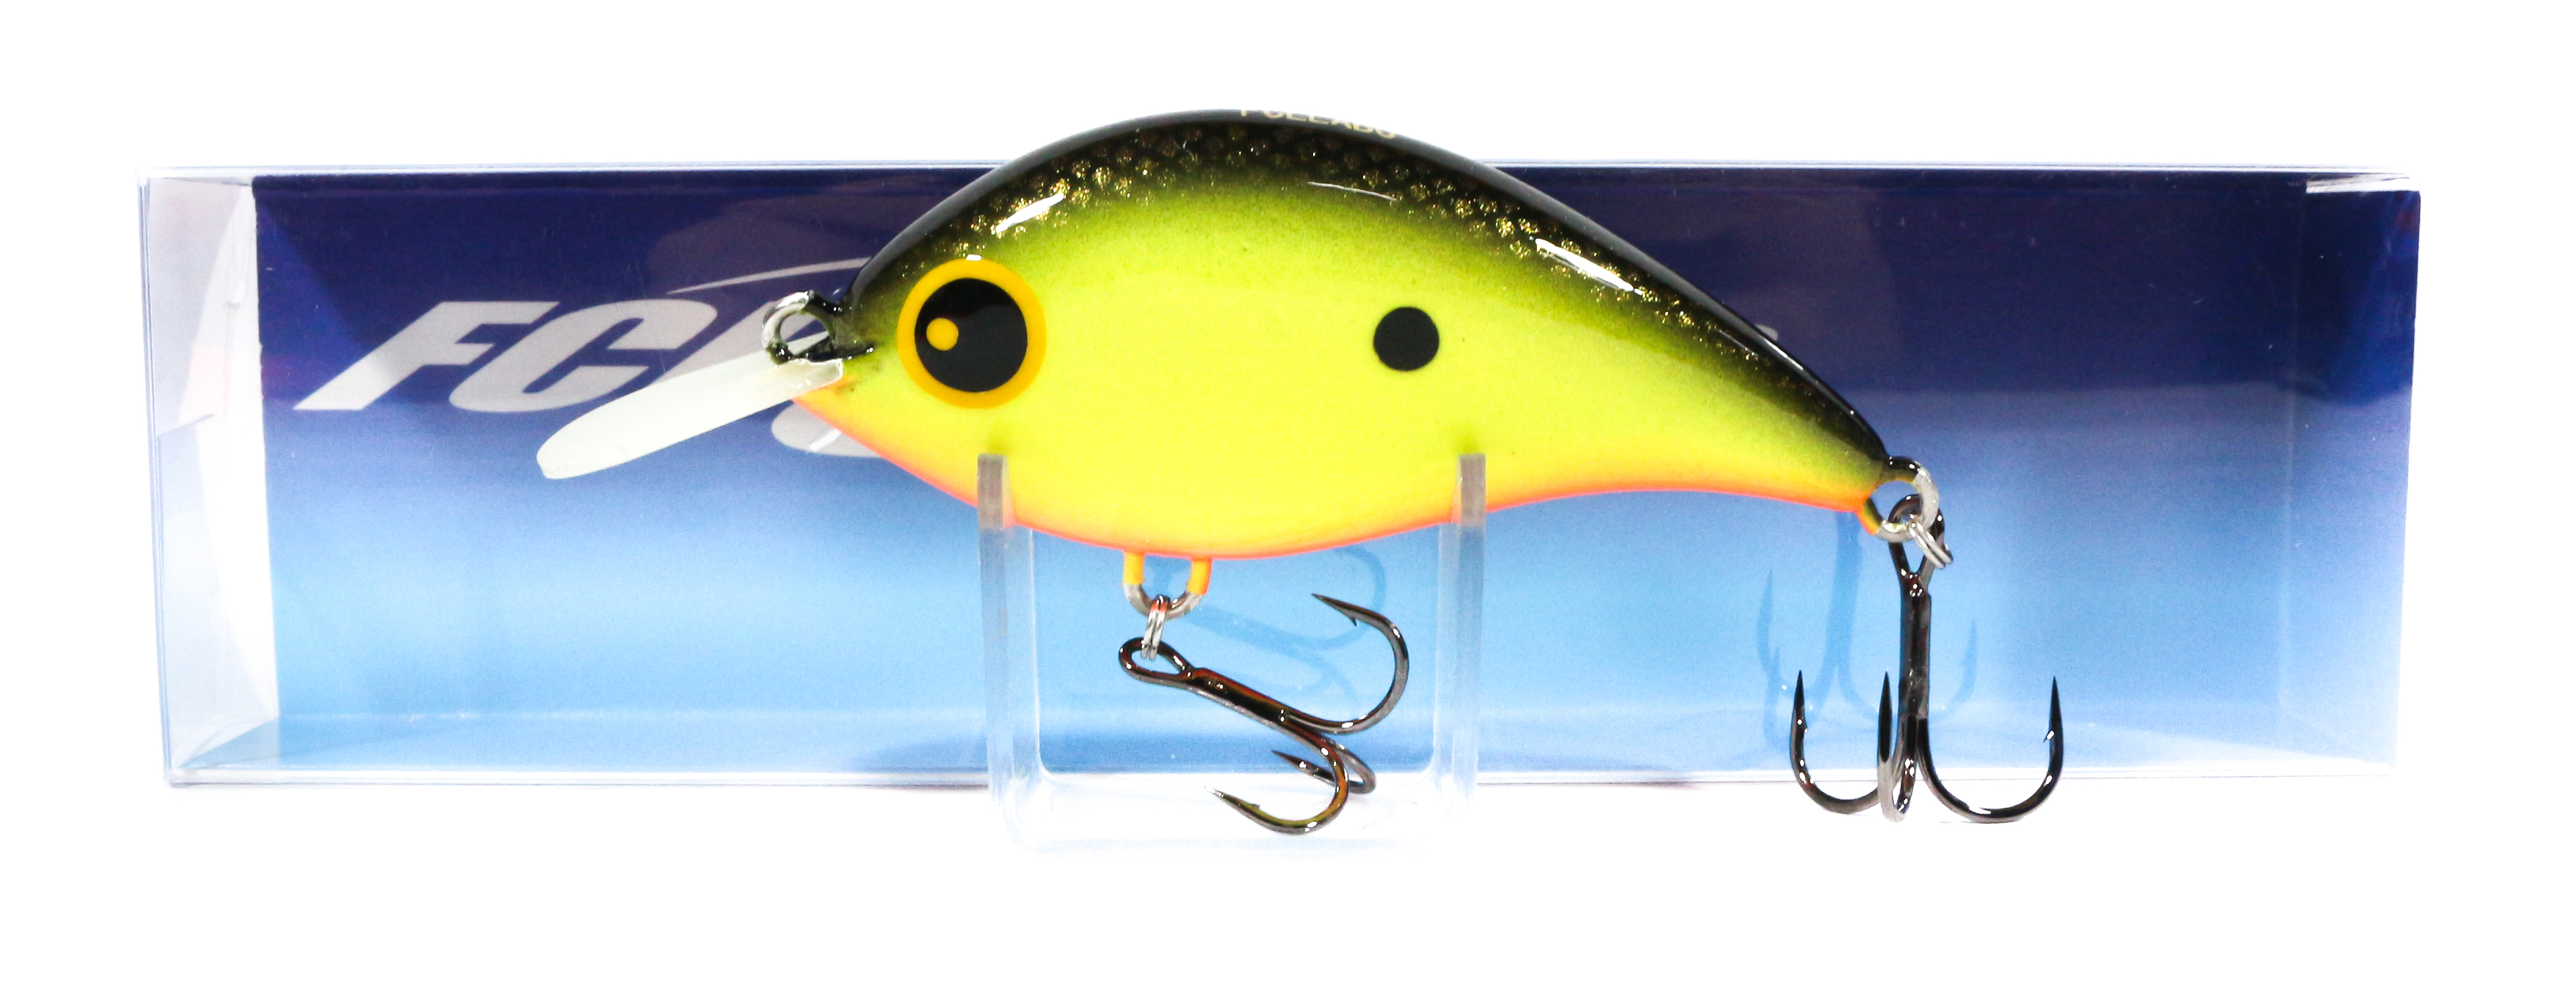 FCL Labo Lure TKC 70 Floating Lure CBK (3993)